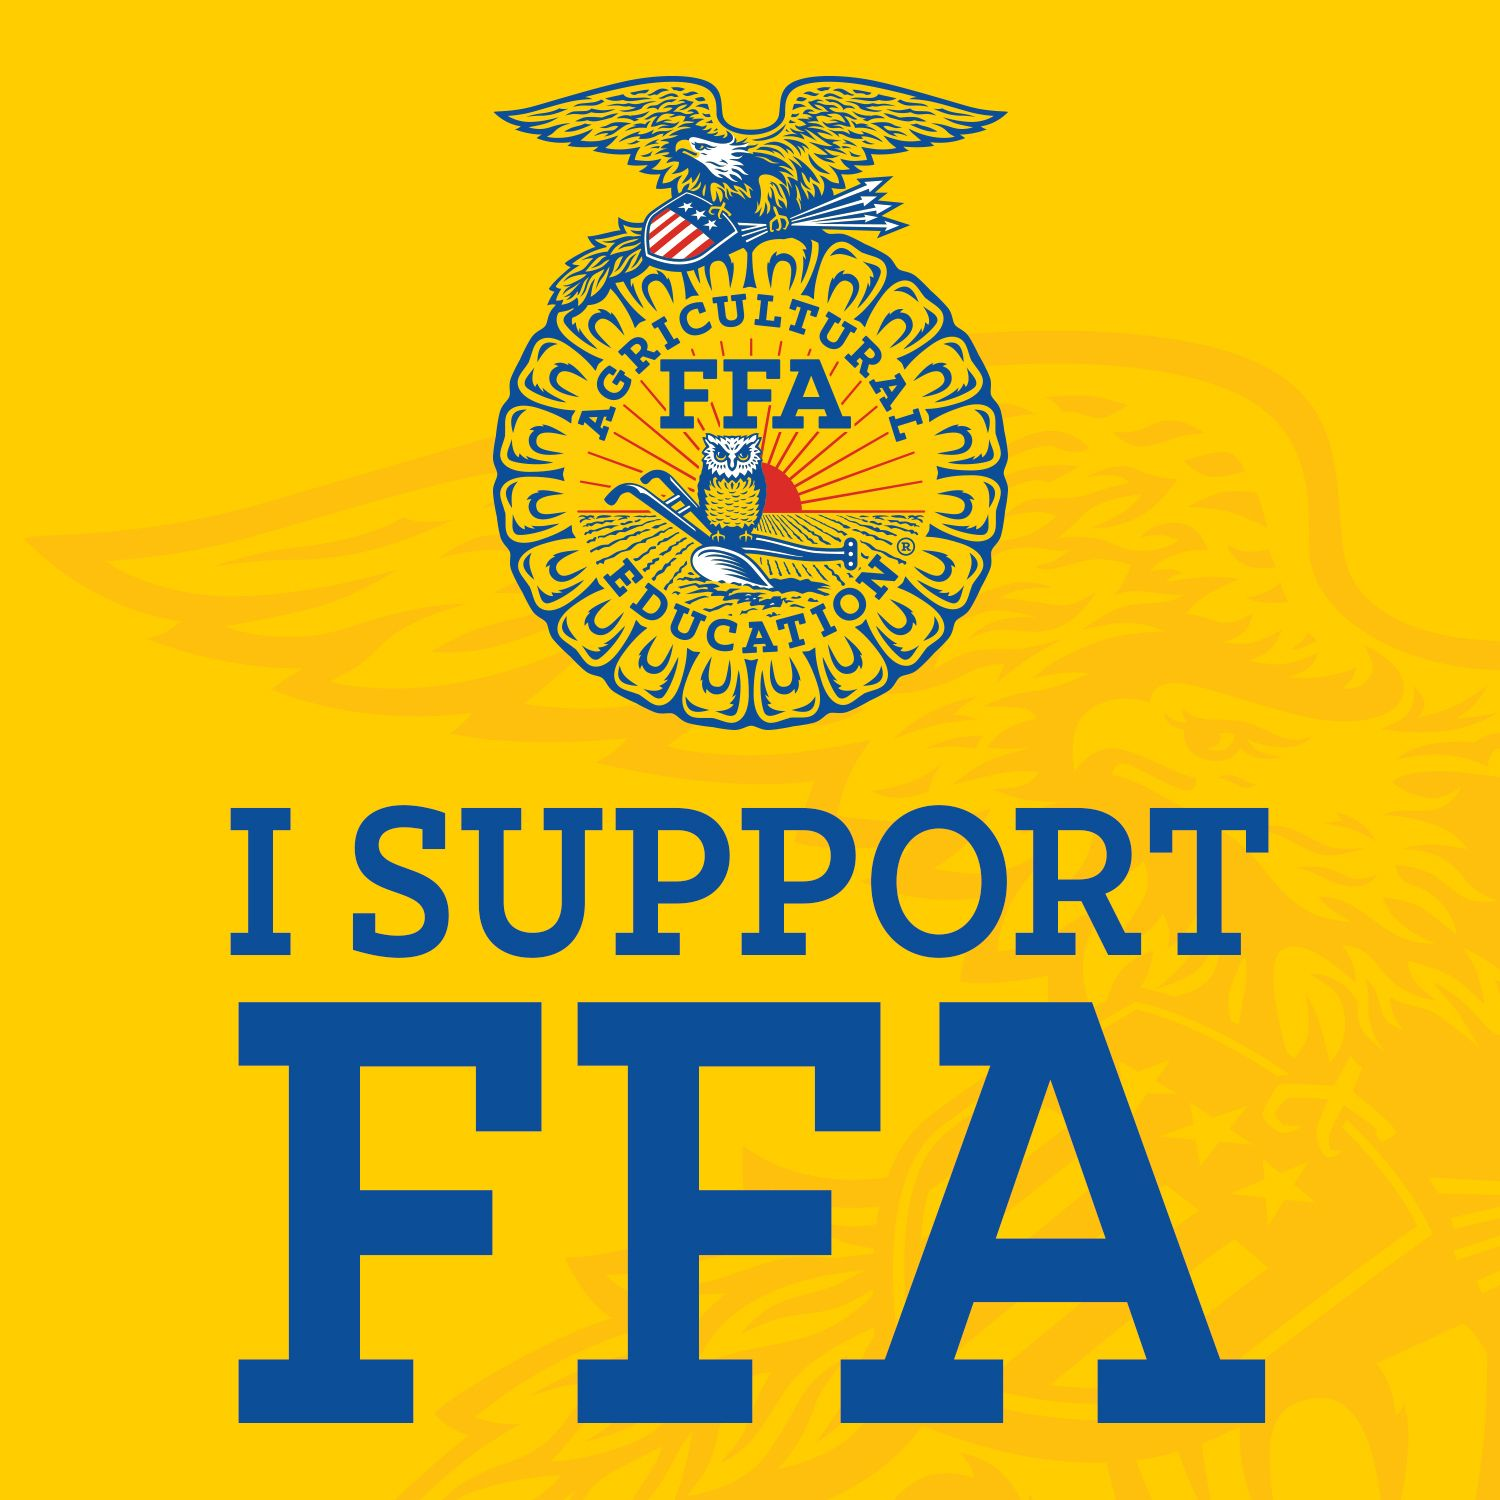 Change Your Profile Picture During Ffaweek